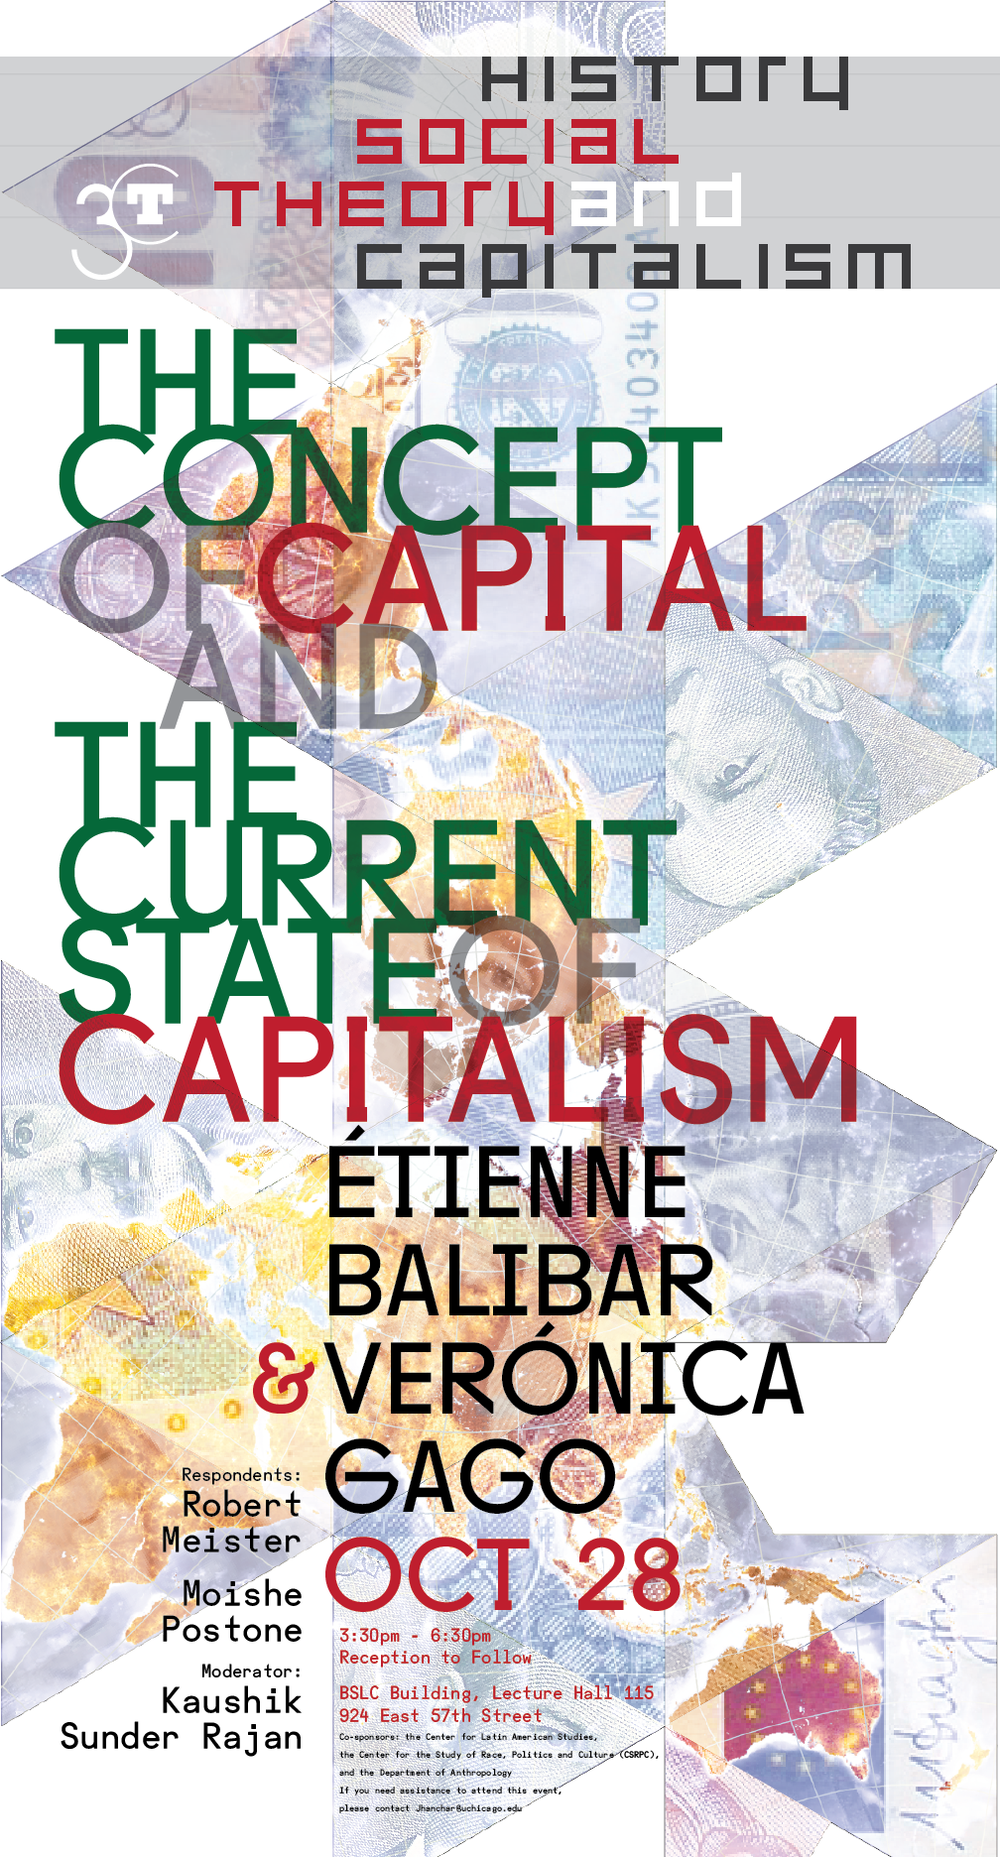 Poster for The Concept of Capital and the Current State of Capitalism Balibar and Gago event